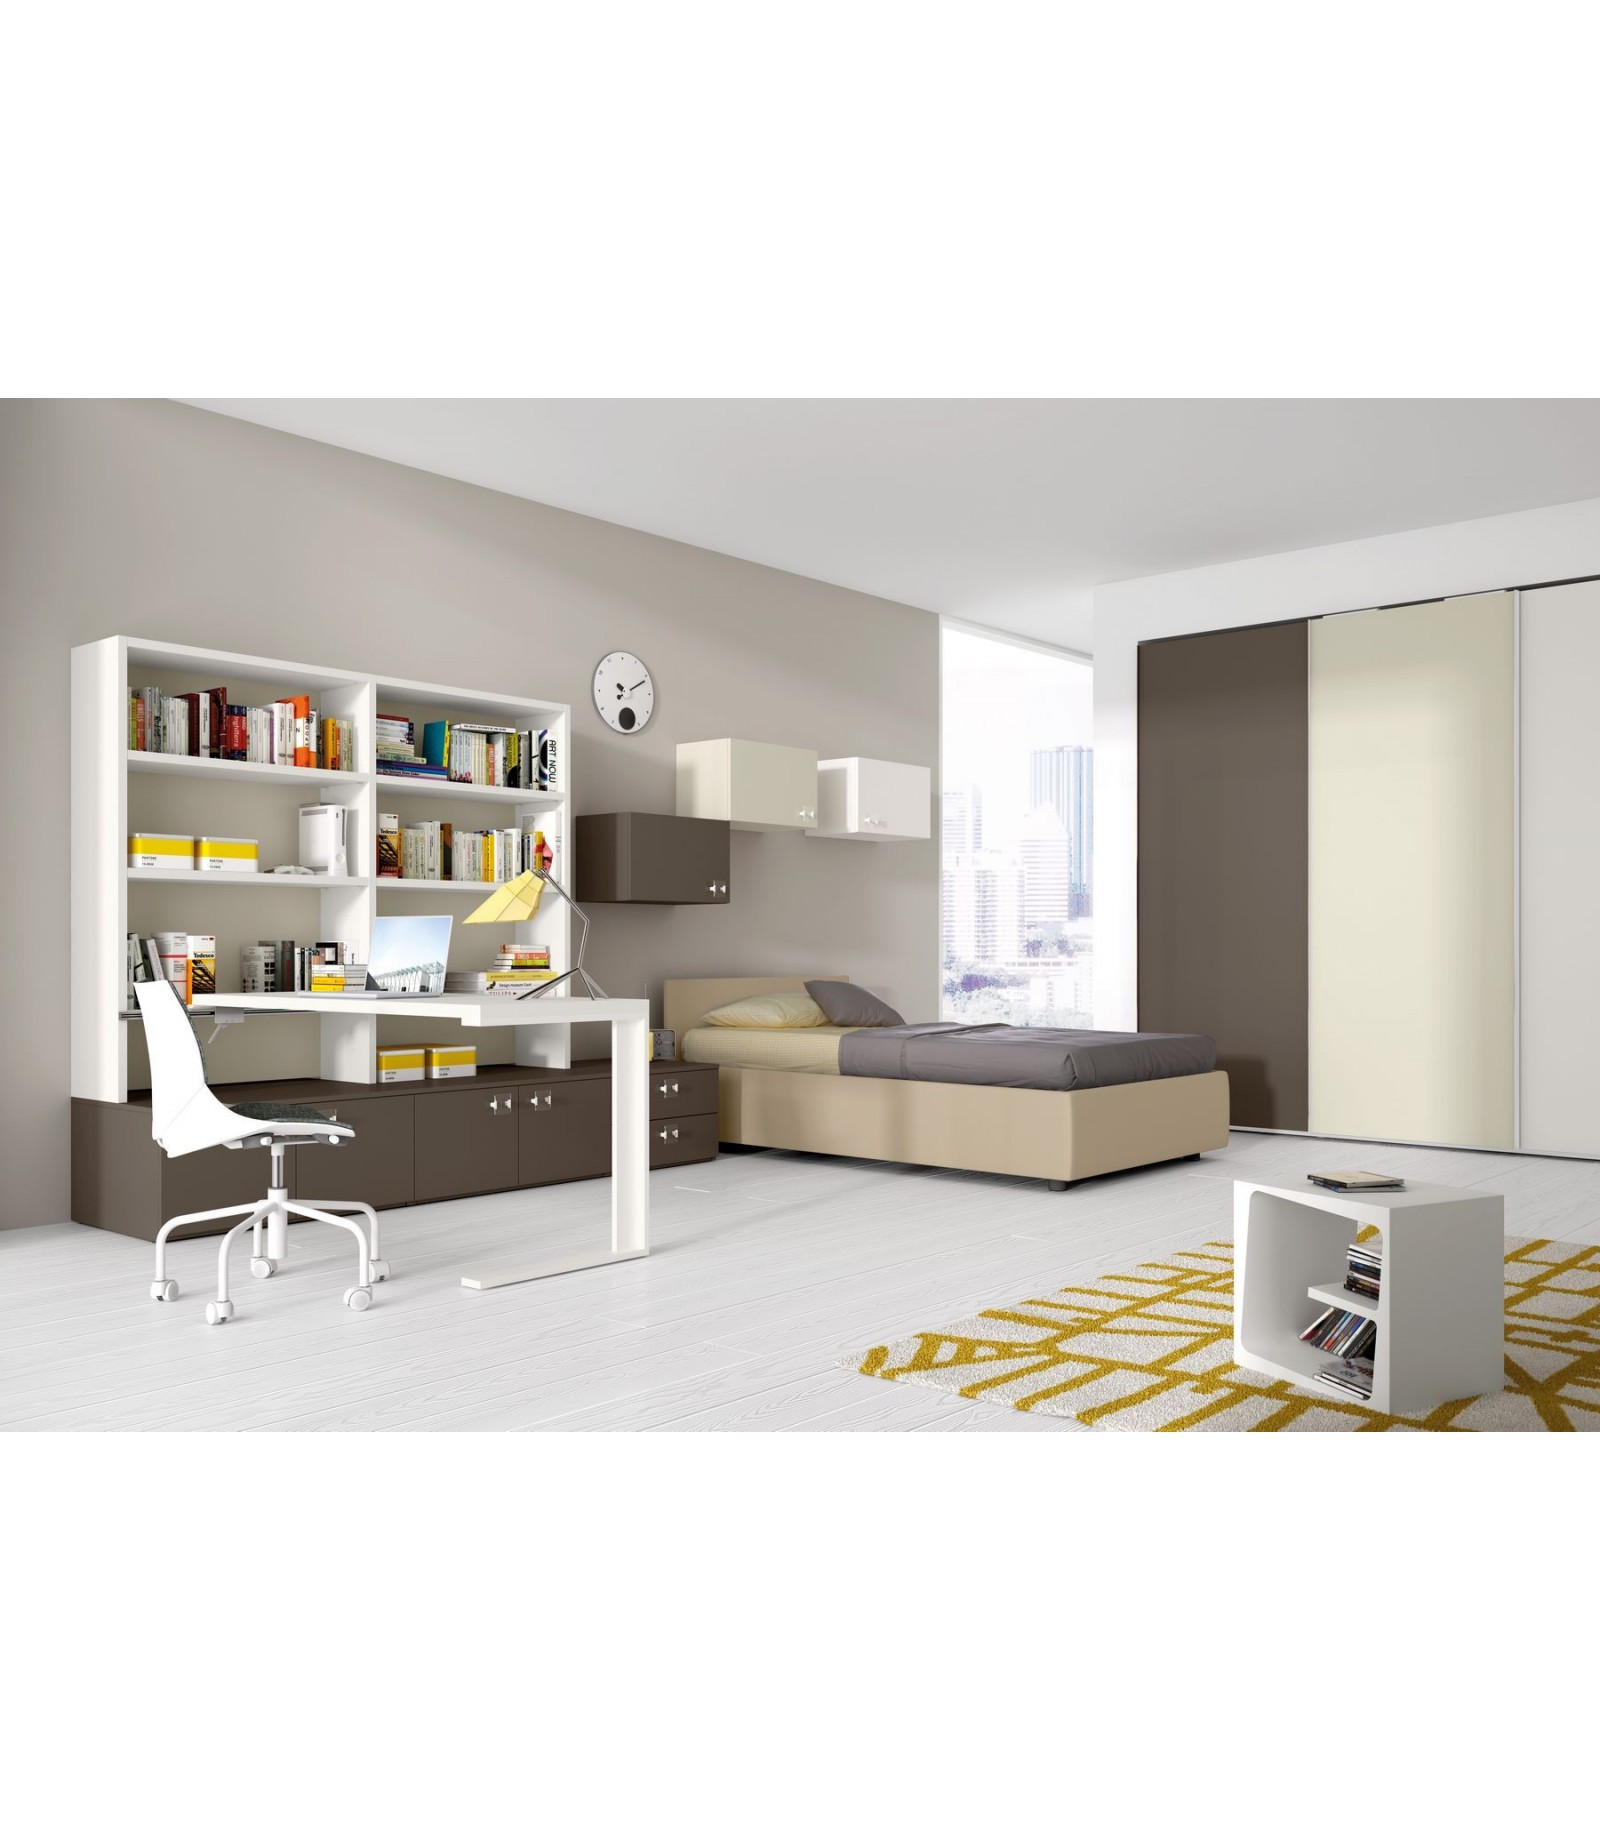 Outlet arredamento emilia romagna share the knownledge for Outlet arredamento modena